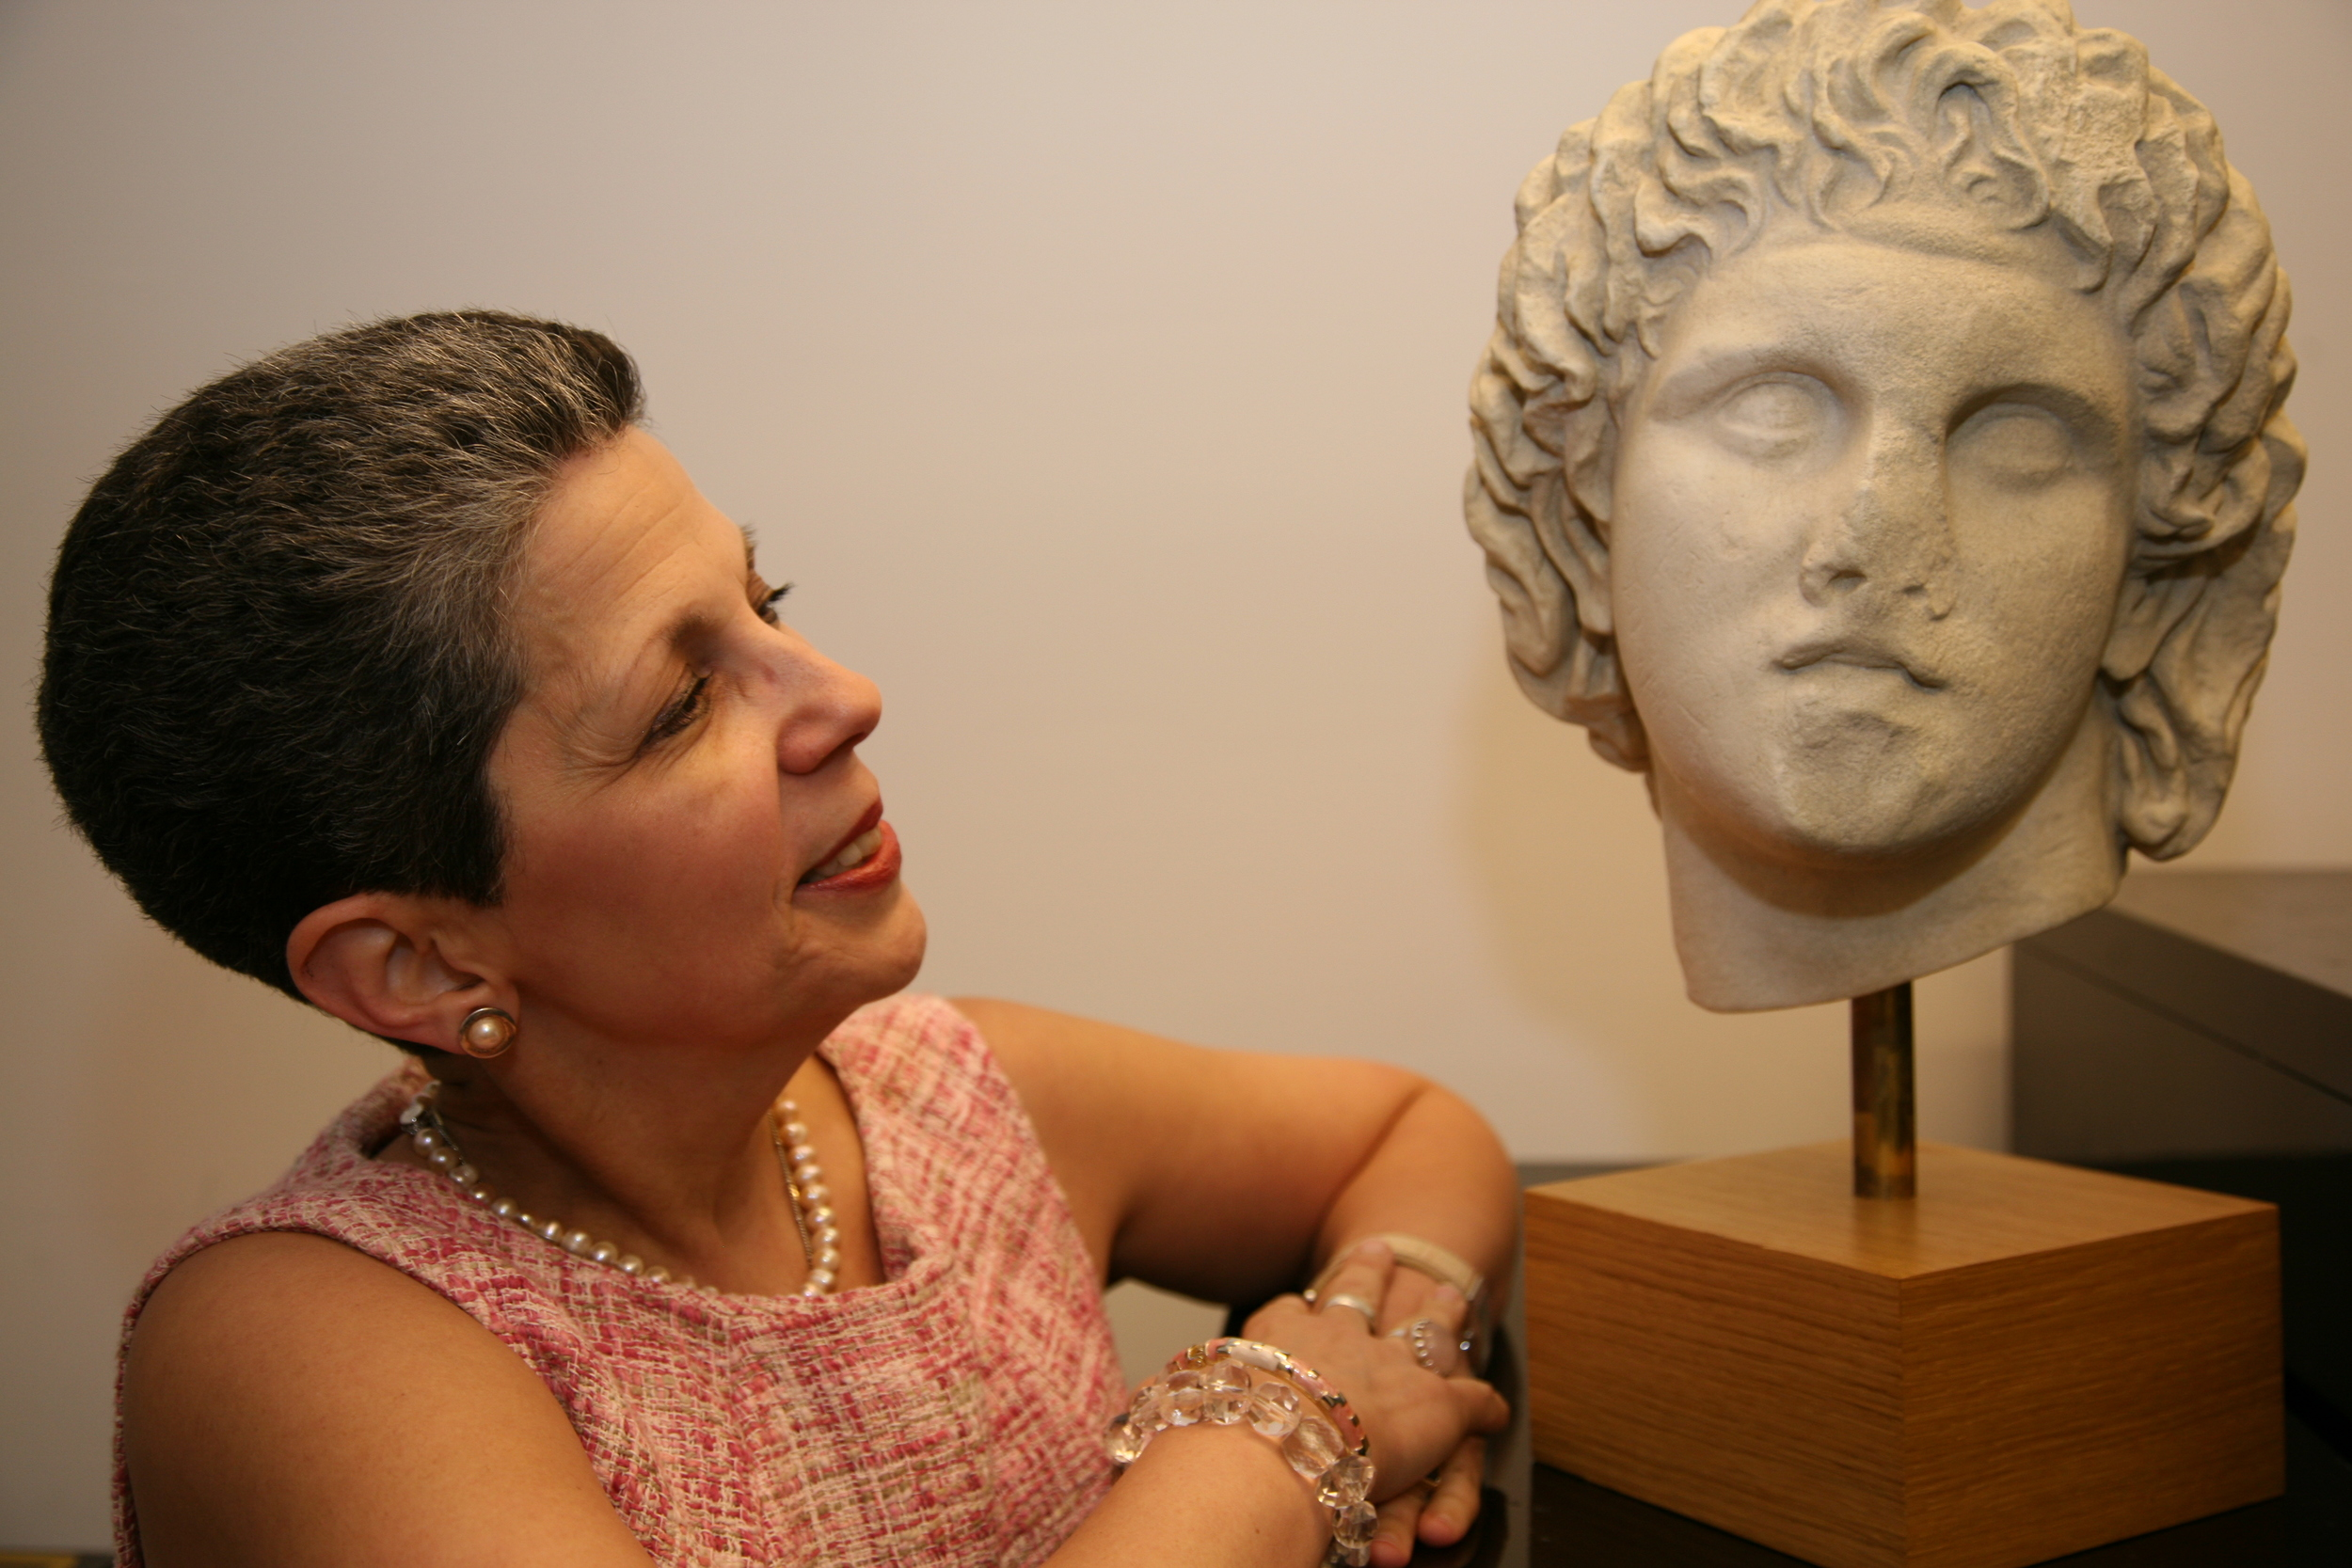 Georgette Gouveia with a copy of a bust of Alexander the Great from the Archaeological Museum of Pella in Greece.  Photograph by Bob Rozycki. Courtesy WAG magazine.